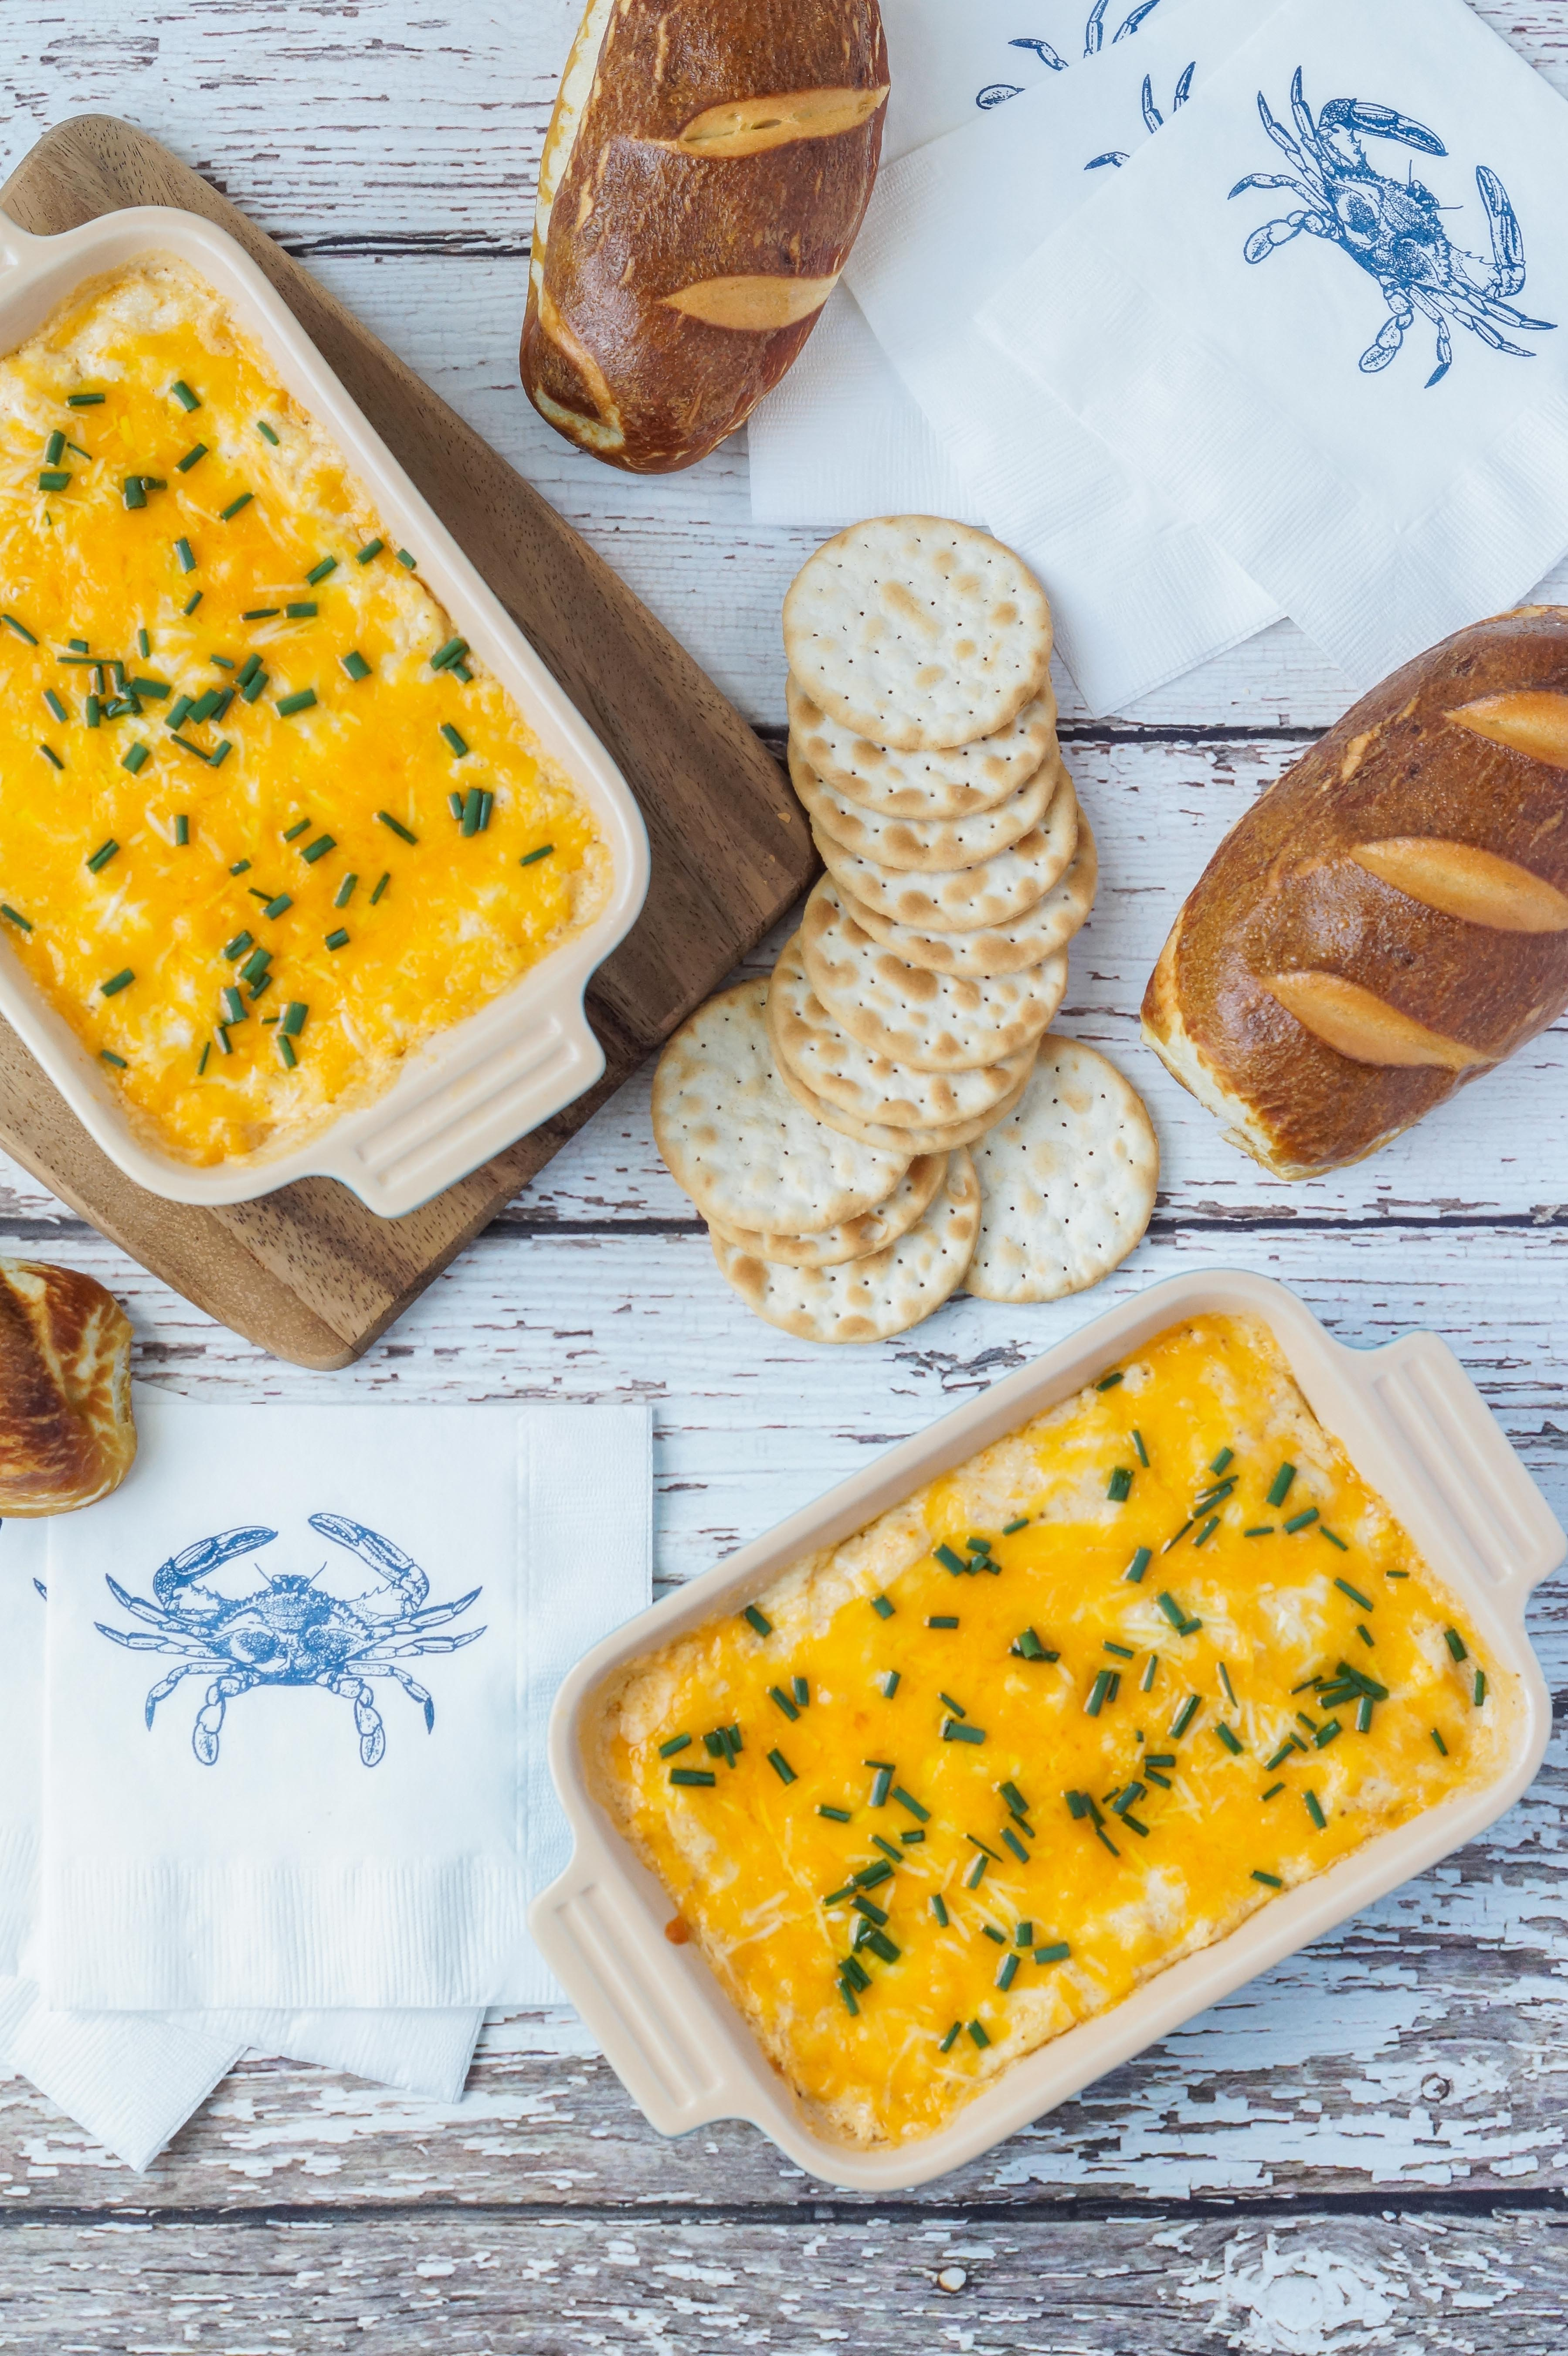 Maryland Crab Dip in a dish with crackers and bread